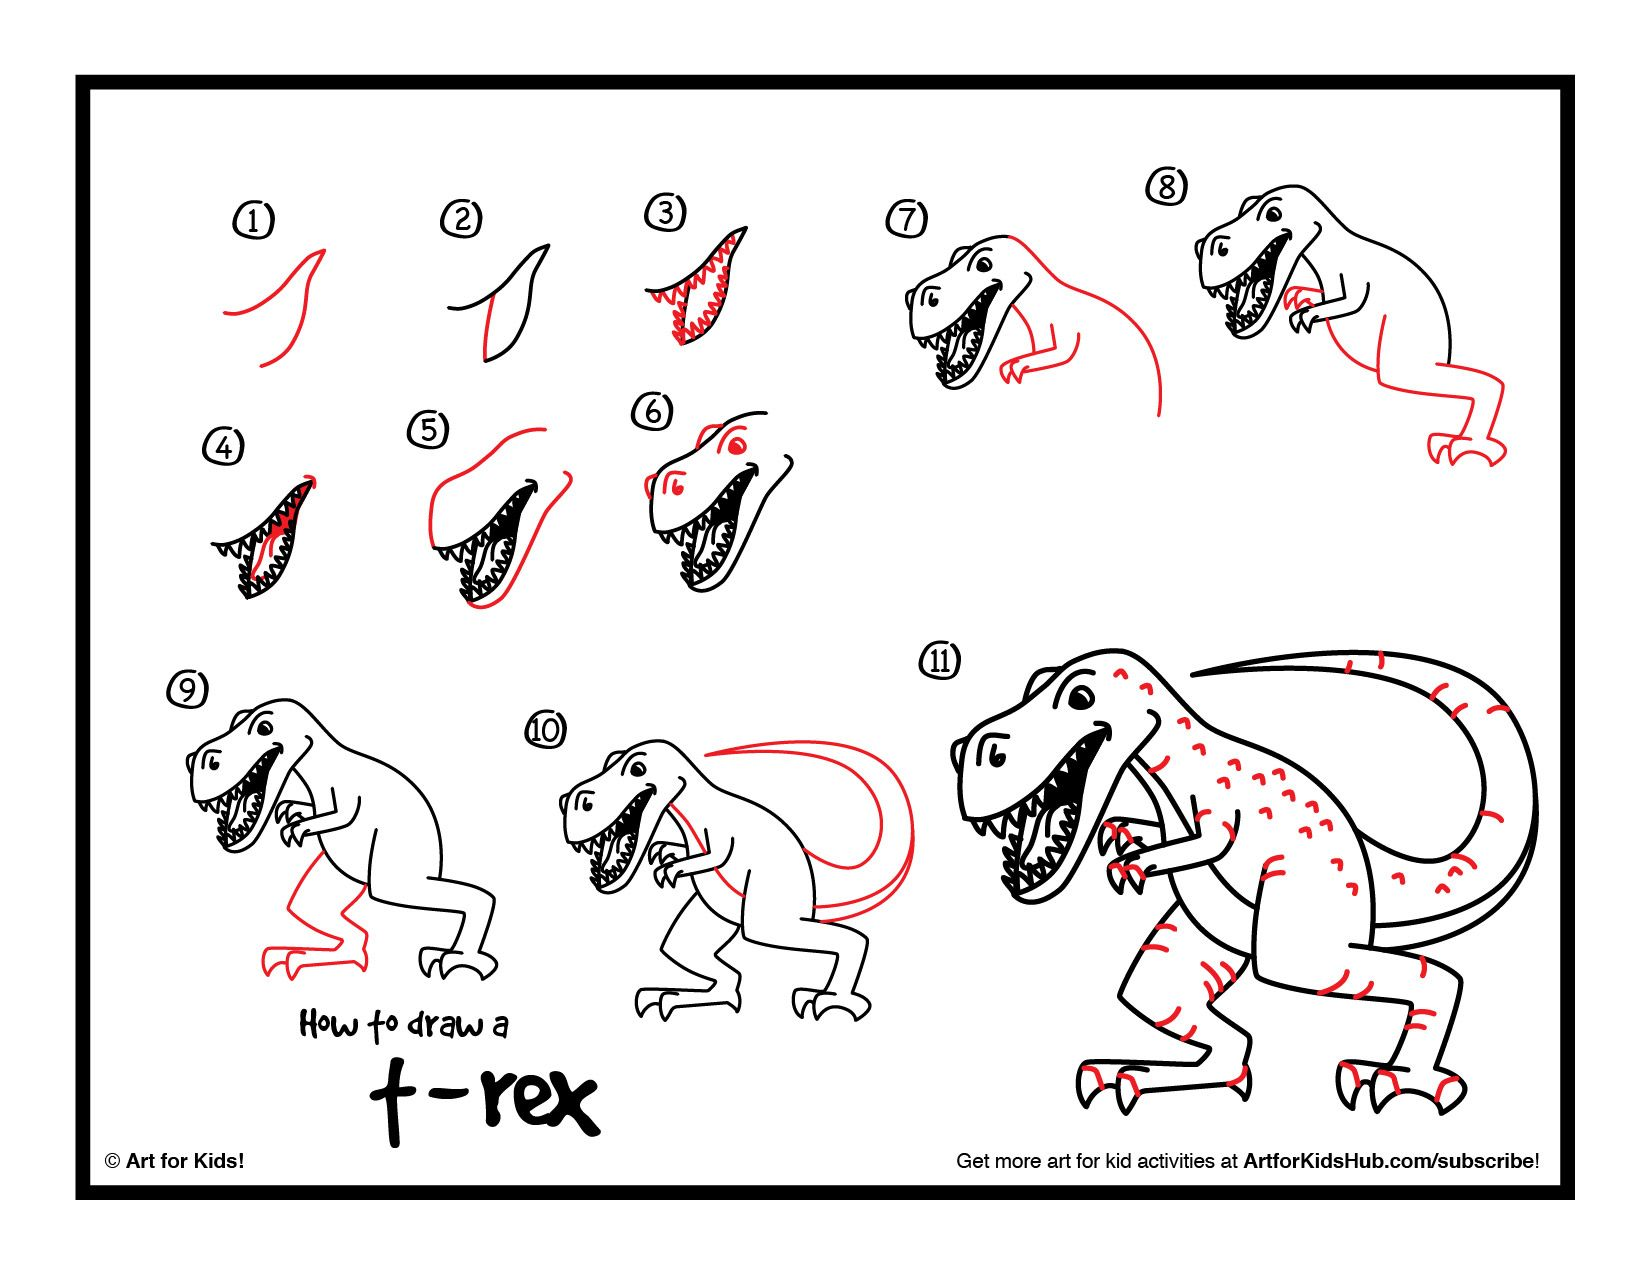 how to draw a realistic t rex art club members art for kids hub - Children Drawing Book Free Download